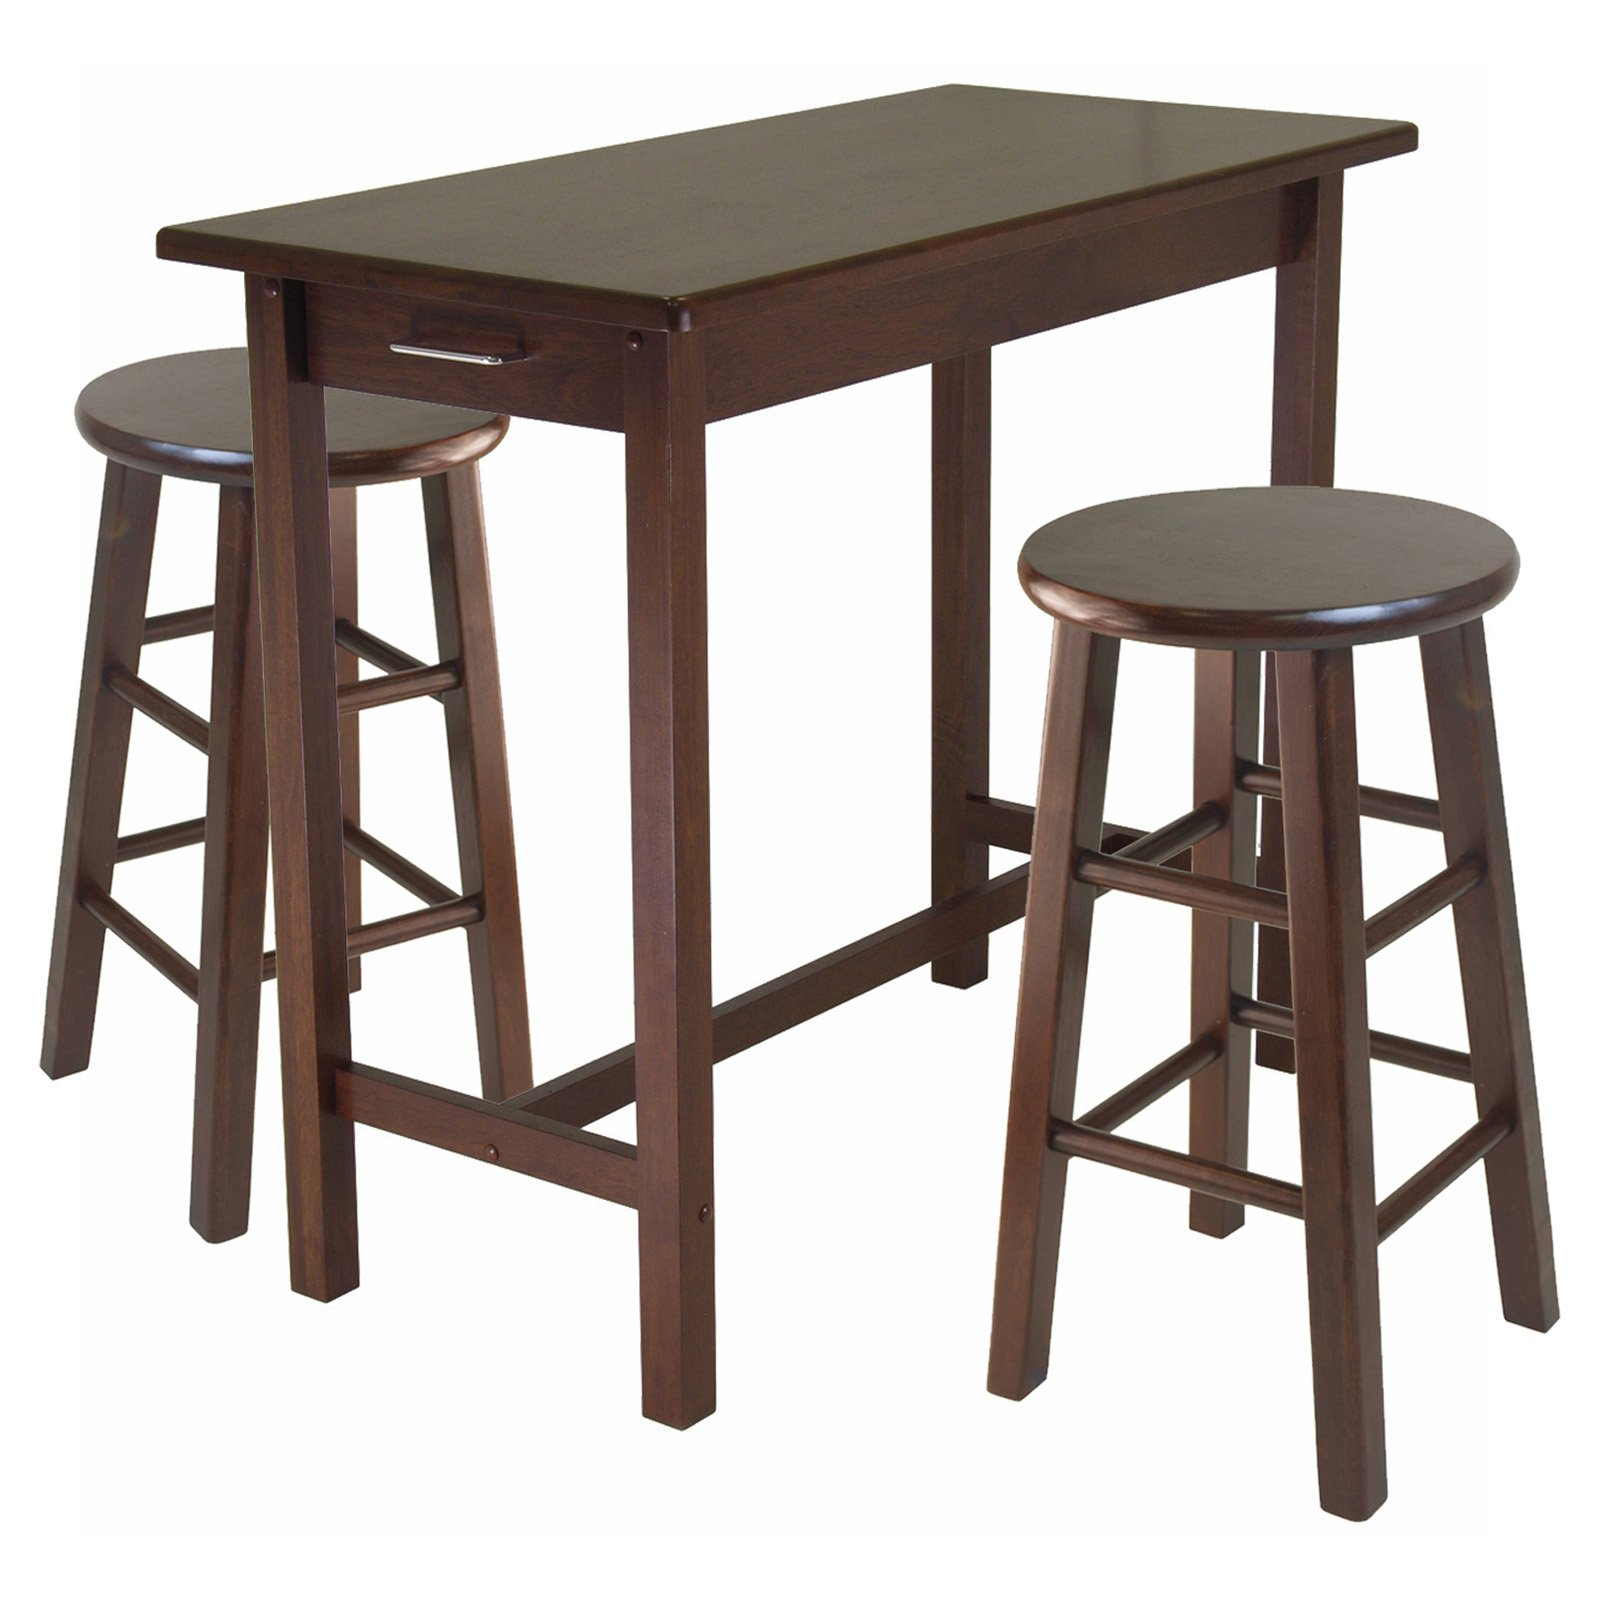 Excellent Sally 3 Pc Breakfast Table Set With 2 Square Leg Stools Machost Co Dining Chair Design Ideas Machostcouk